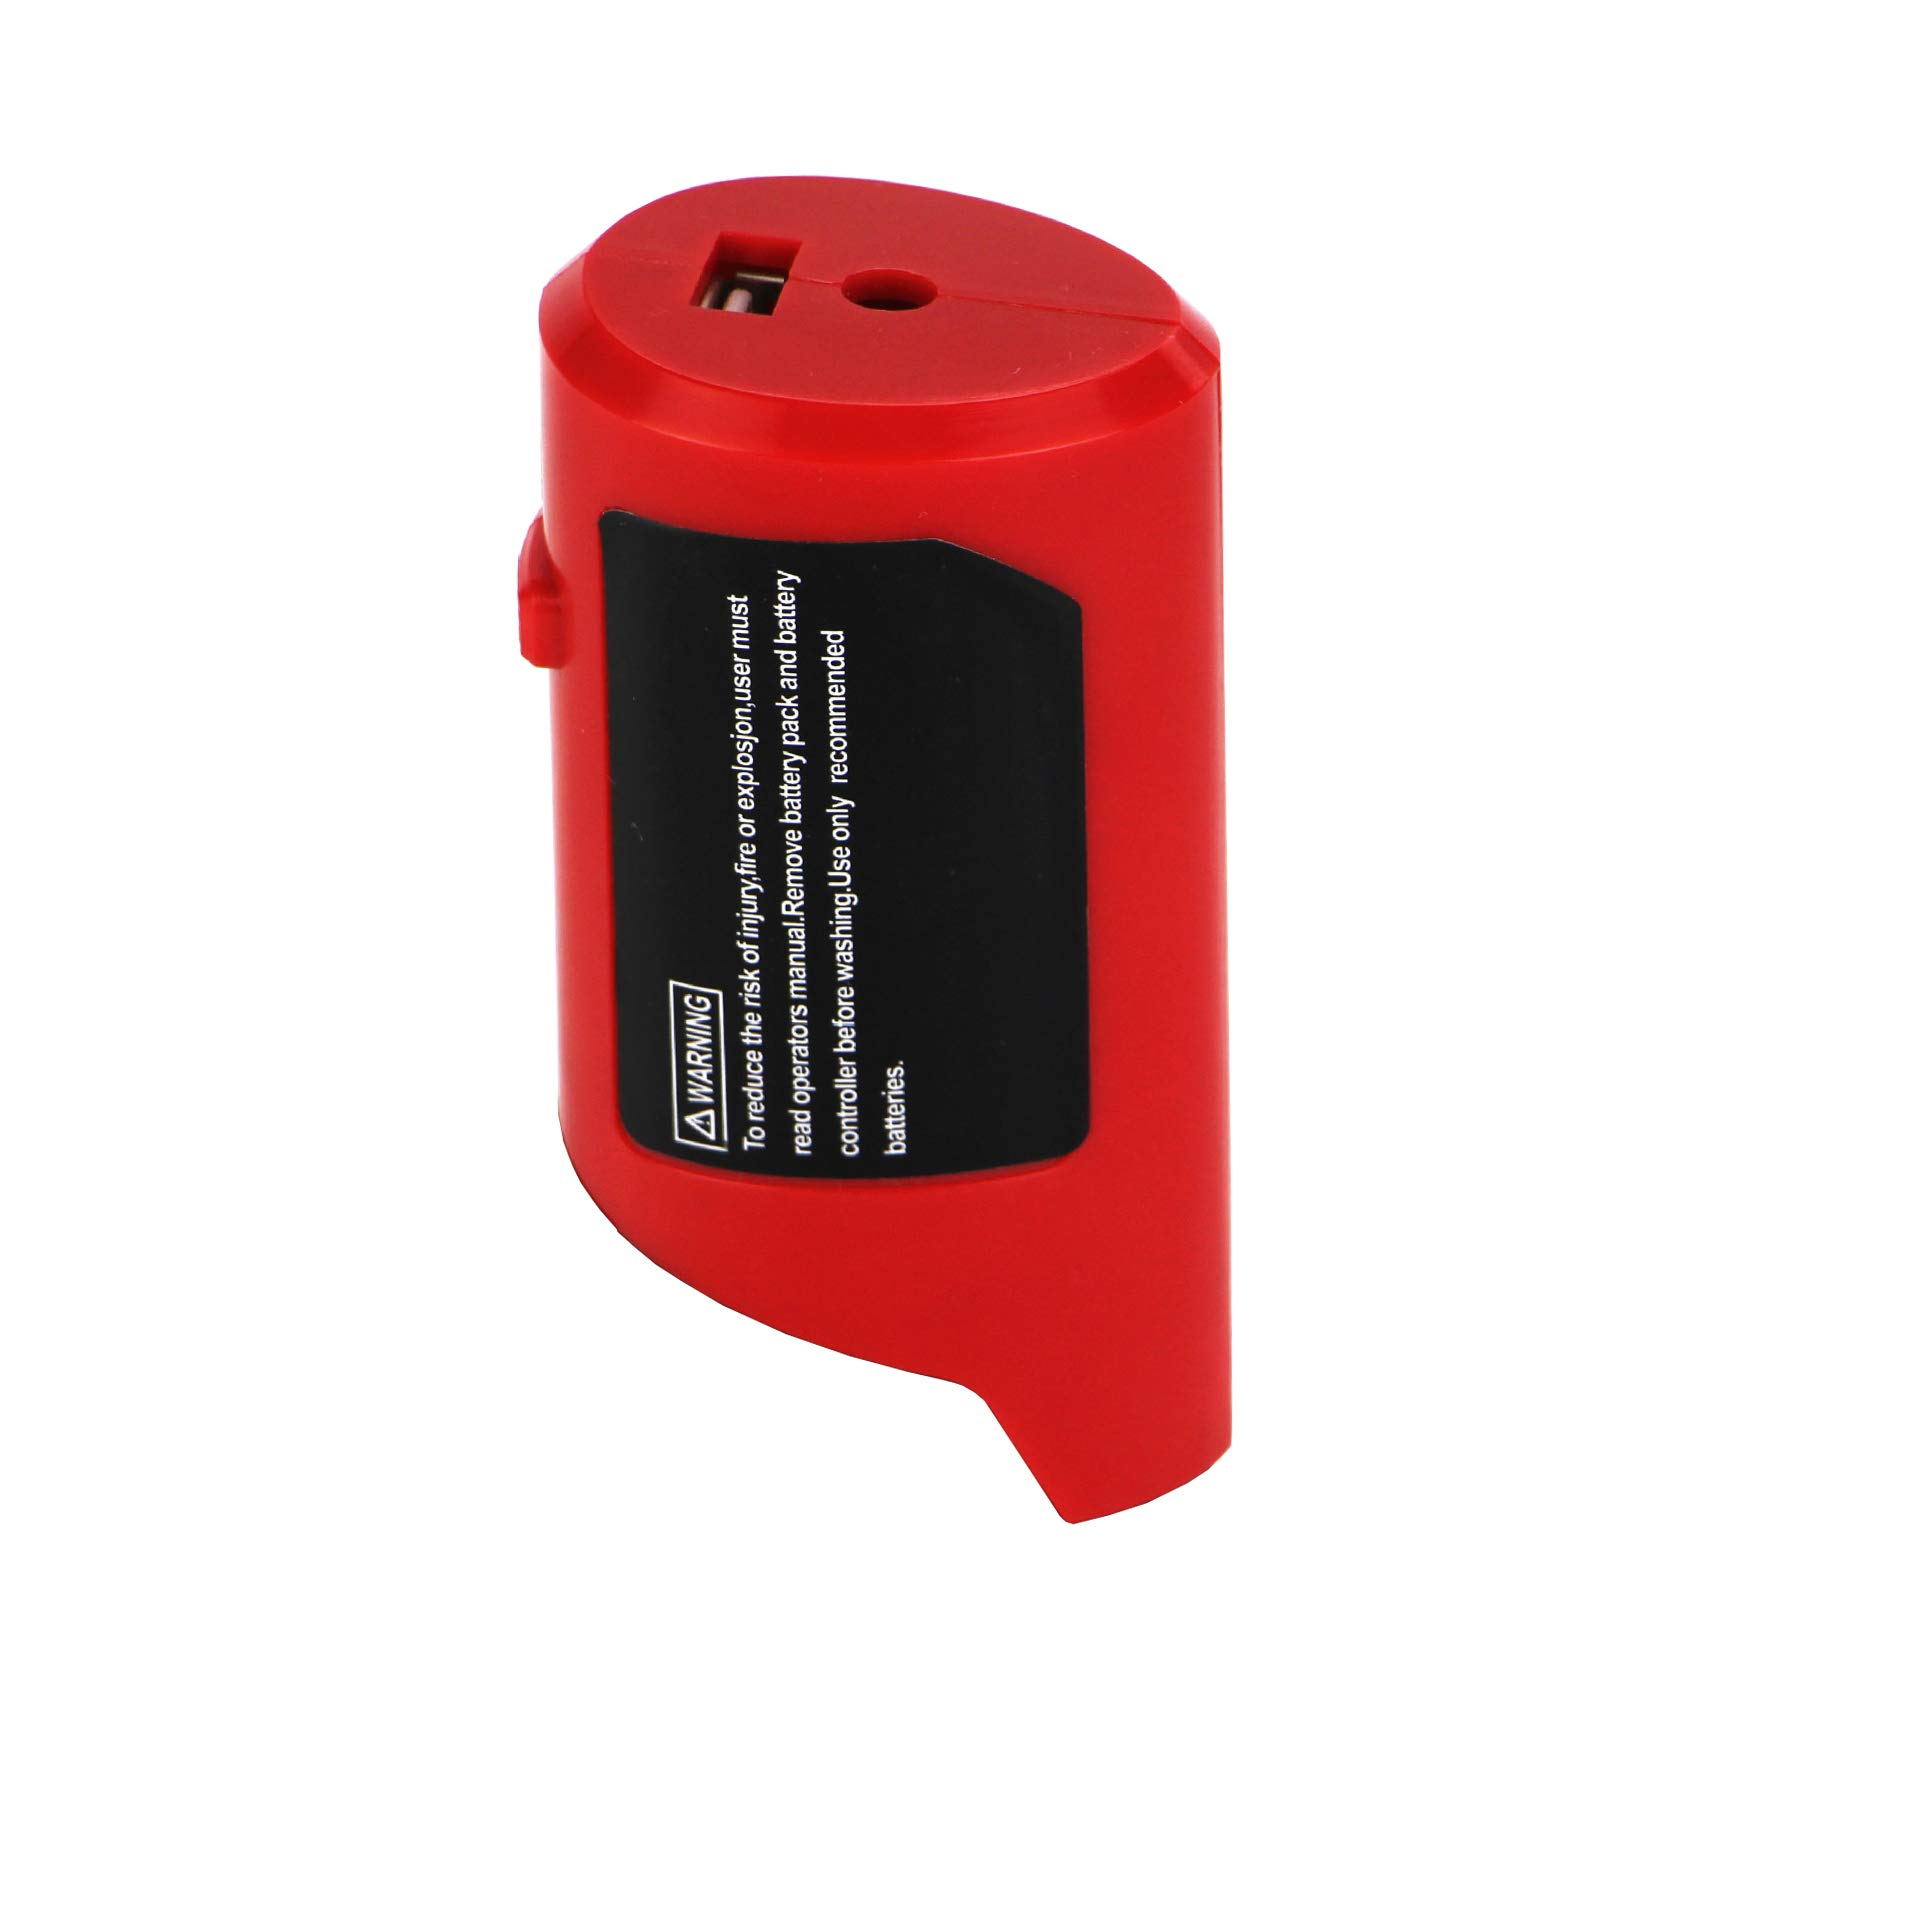 Replace for M12 Power Source Adapter With DC 12V Outlet Charge for Milwaukee Heated Jacket 49-24-2310 48-59-1201 Compatible with M12 Lithium Battery 48-11-2420 48-11-2411 48-11-2401 48-11-2402